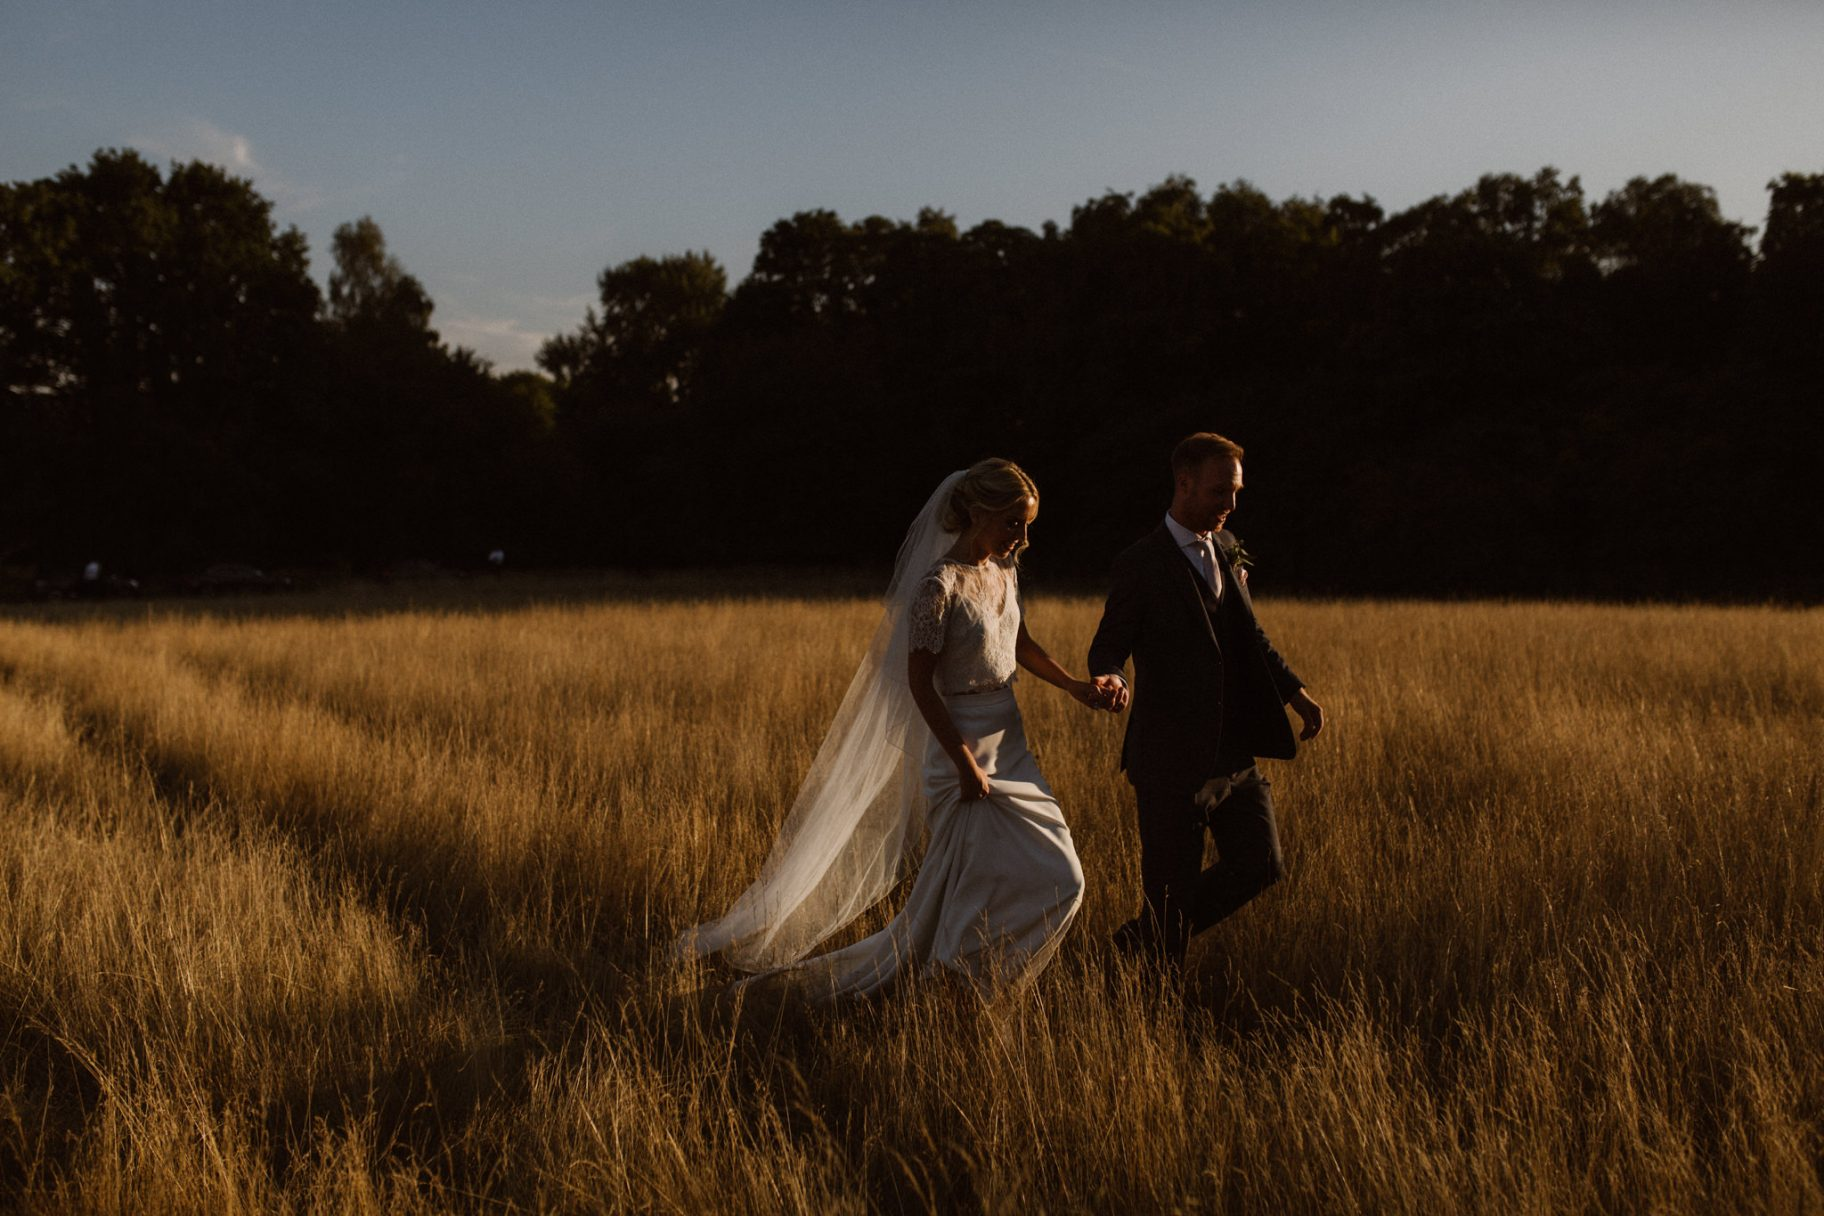 Mary Parker Wedding Photography  - Lauren and David